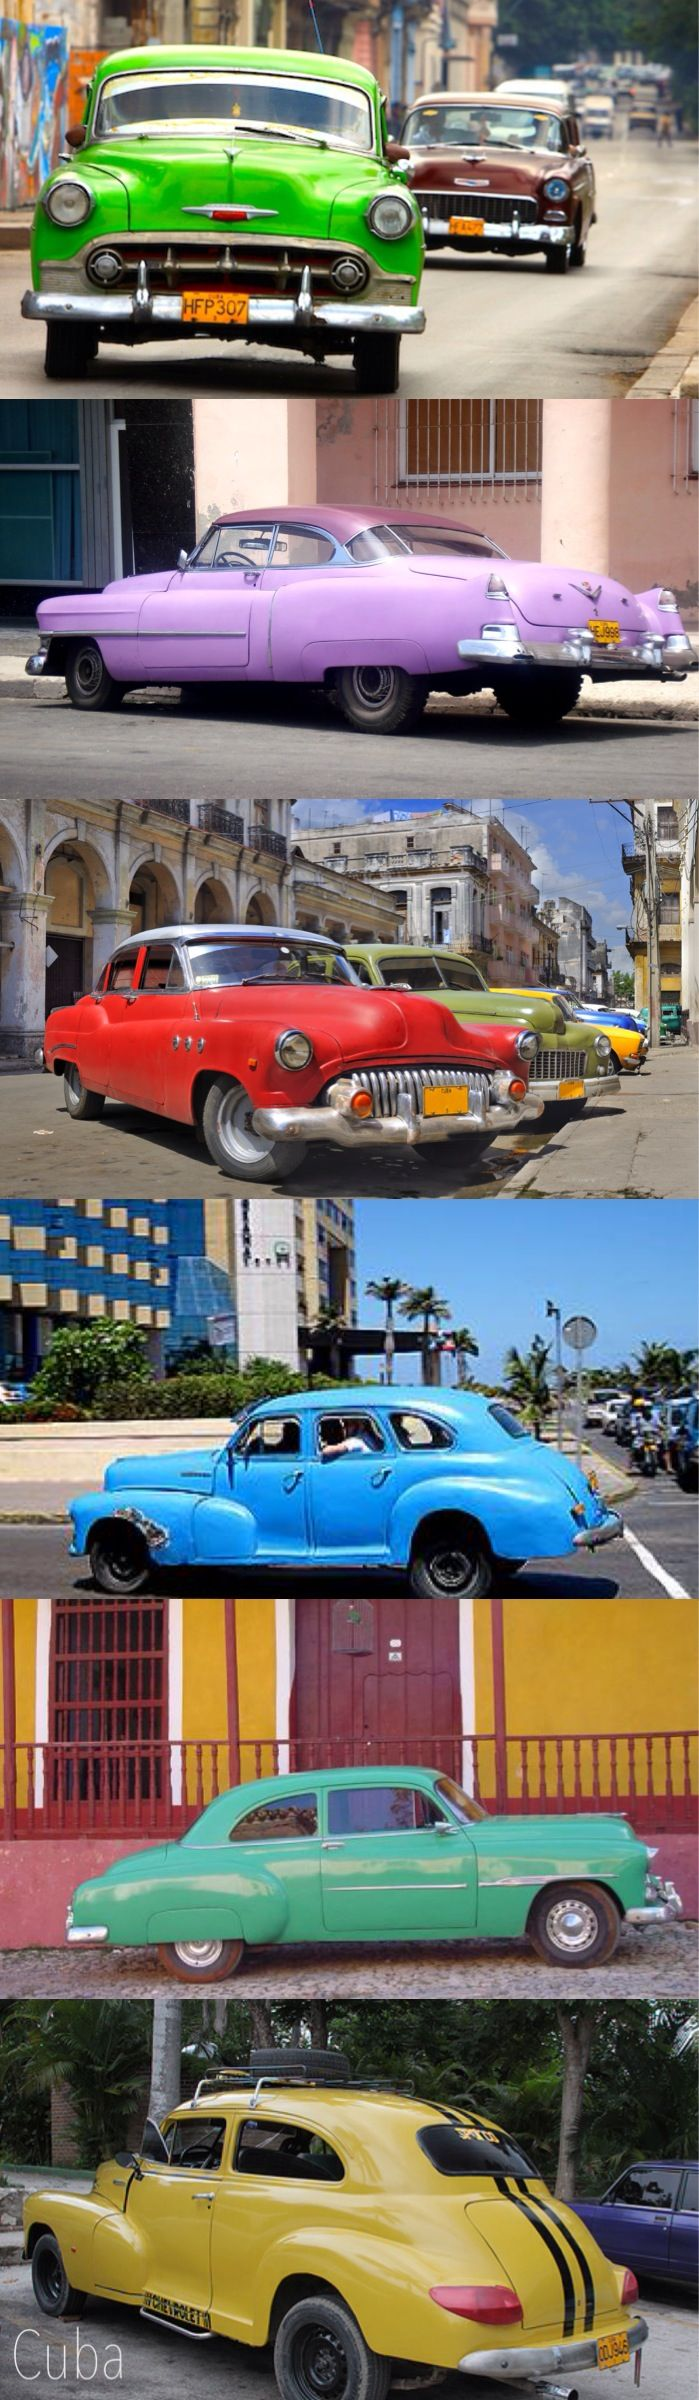 Cars of Cuba...Brought to you by #CarInsuranceagents at #HouseofInsurance in Eugene, Oregon